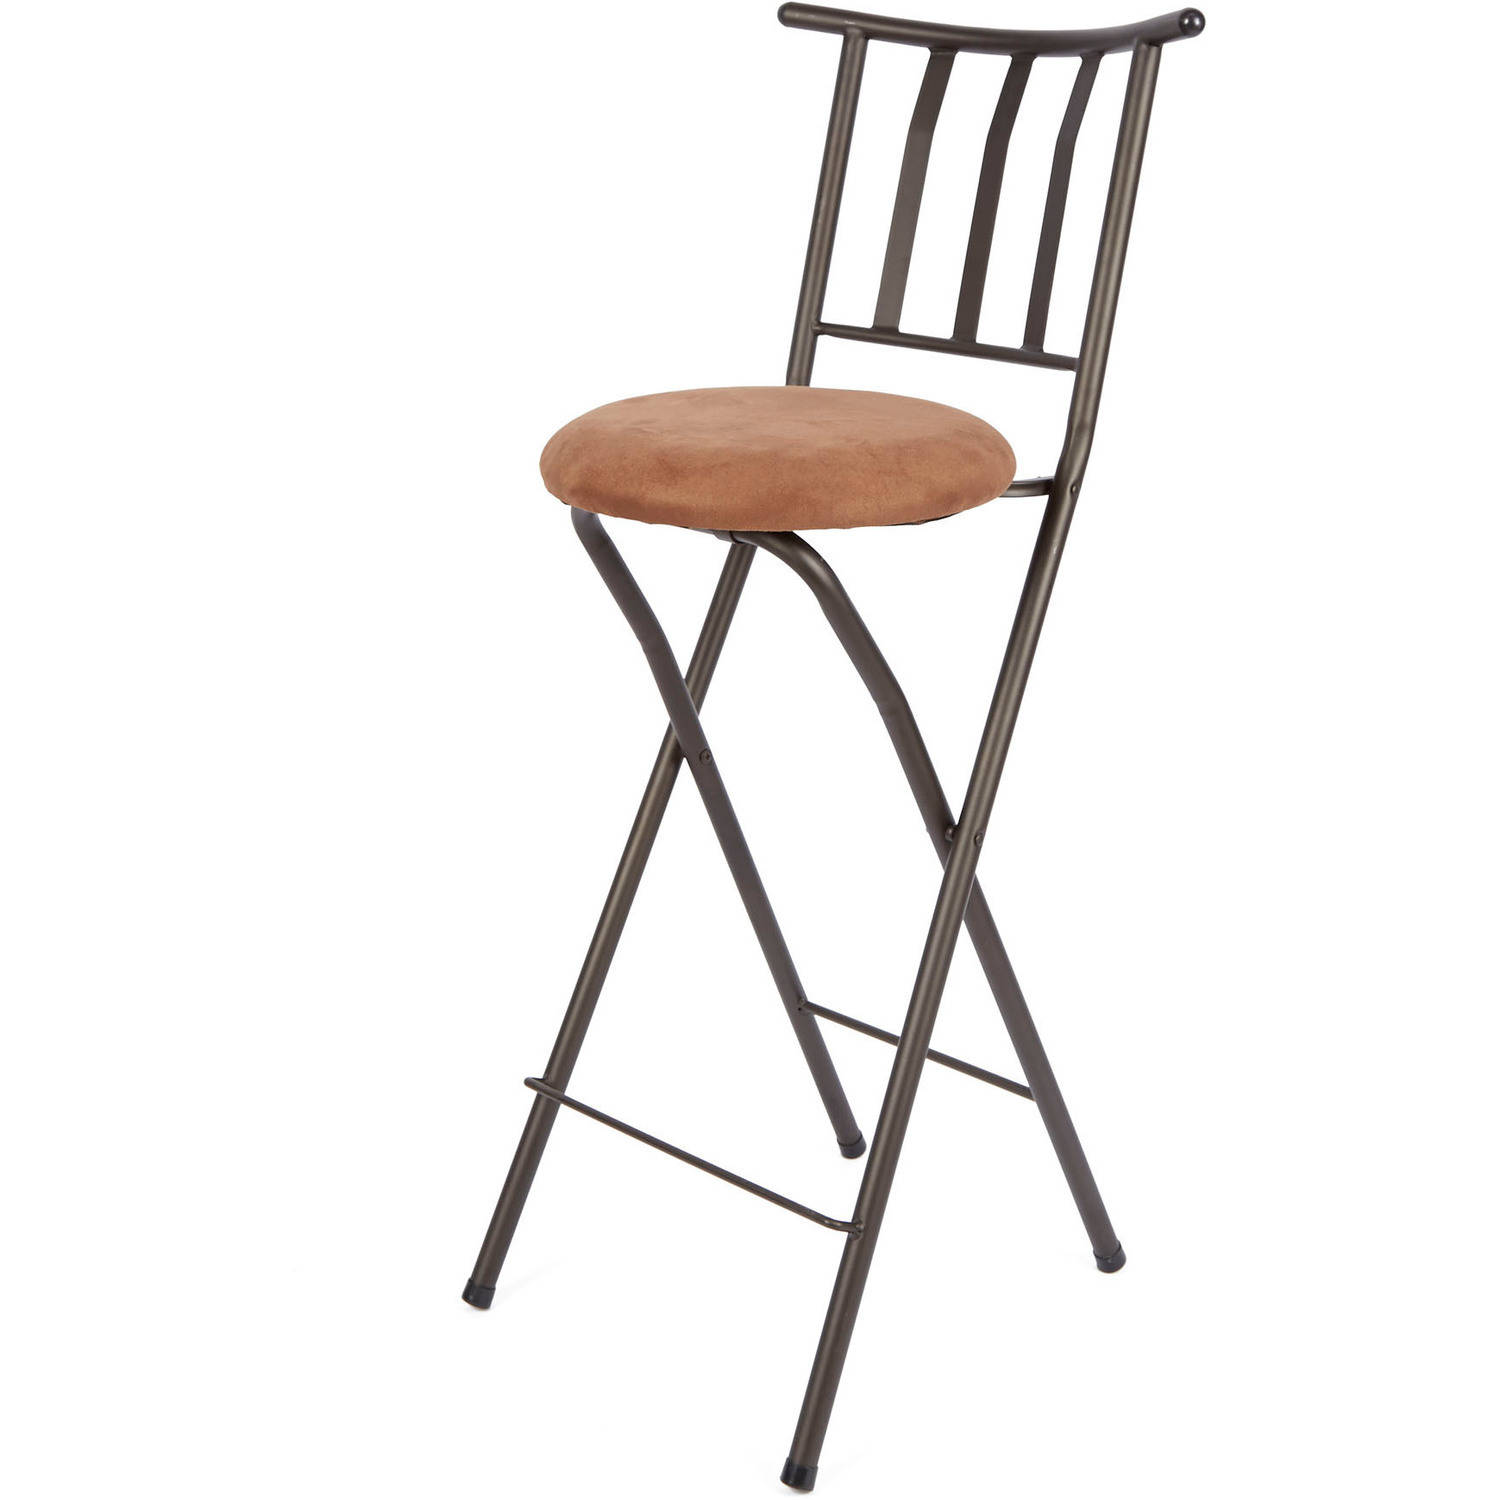 New Adjustable Folding Bar Stool Bronze Chair Furniture X